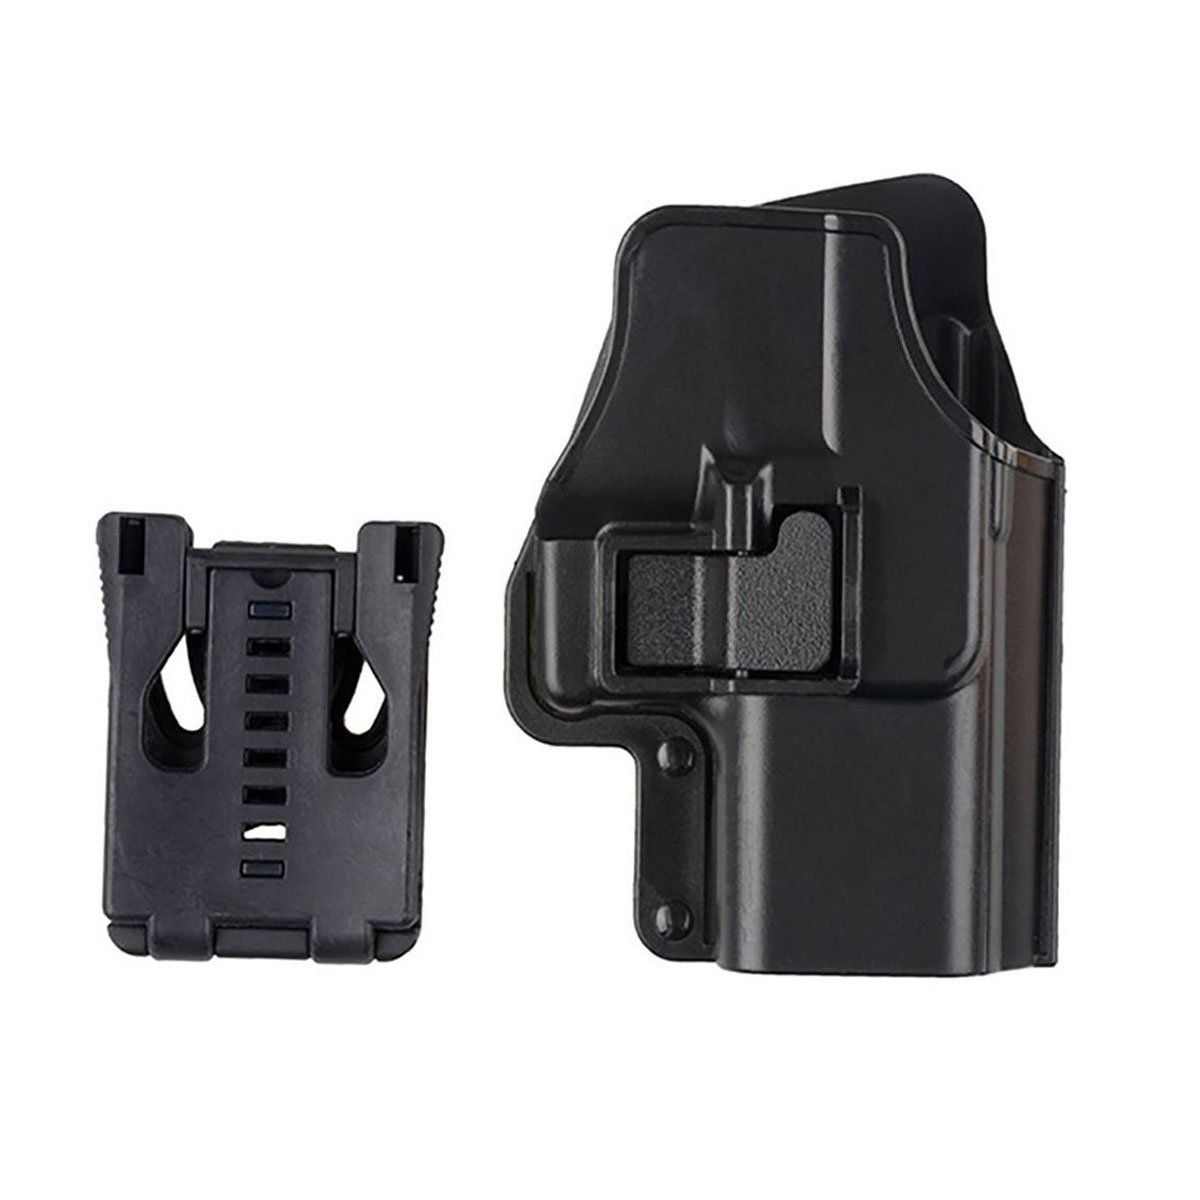 Pistola Airsoft Galaxy G13 Colt 1911 Full Metal Spring + Coldre